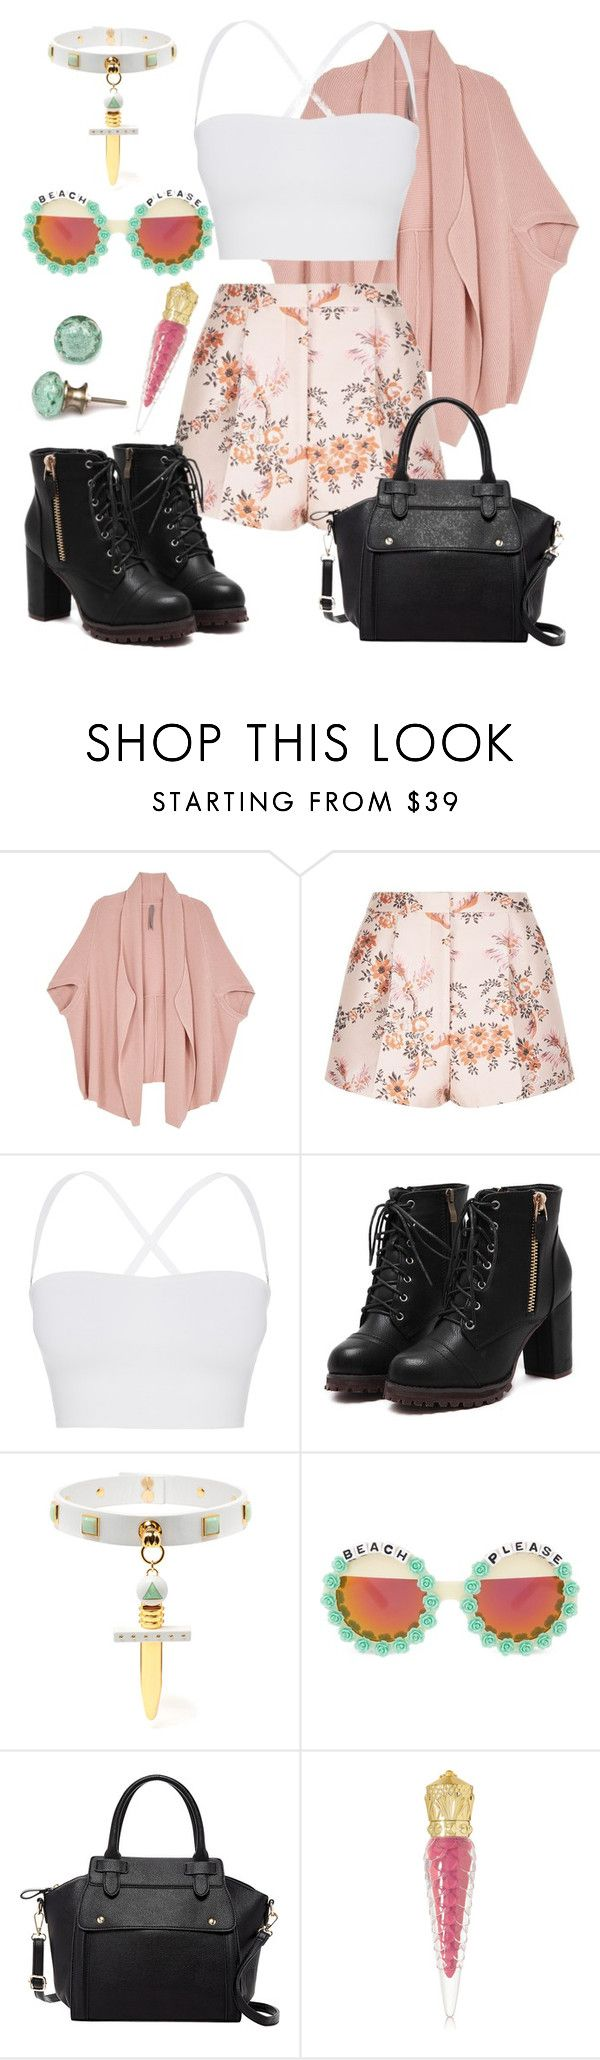 """""""Nope."""" by boneca-costa ❤ liked on Polyvore featuring Melissa McCarthy Seven7, STELLA McCARTNEY, Theory, Rad+Refined, Pink Haley, Christian Louboutin and plus size clothing"""